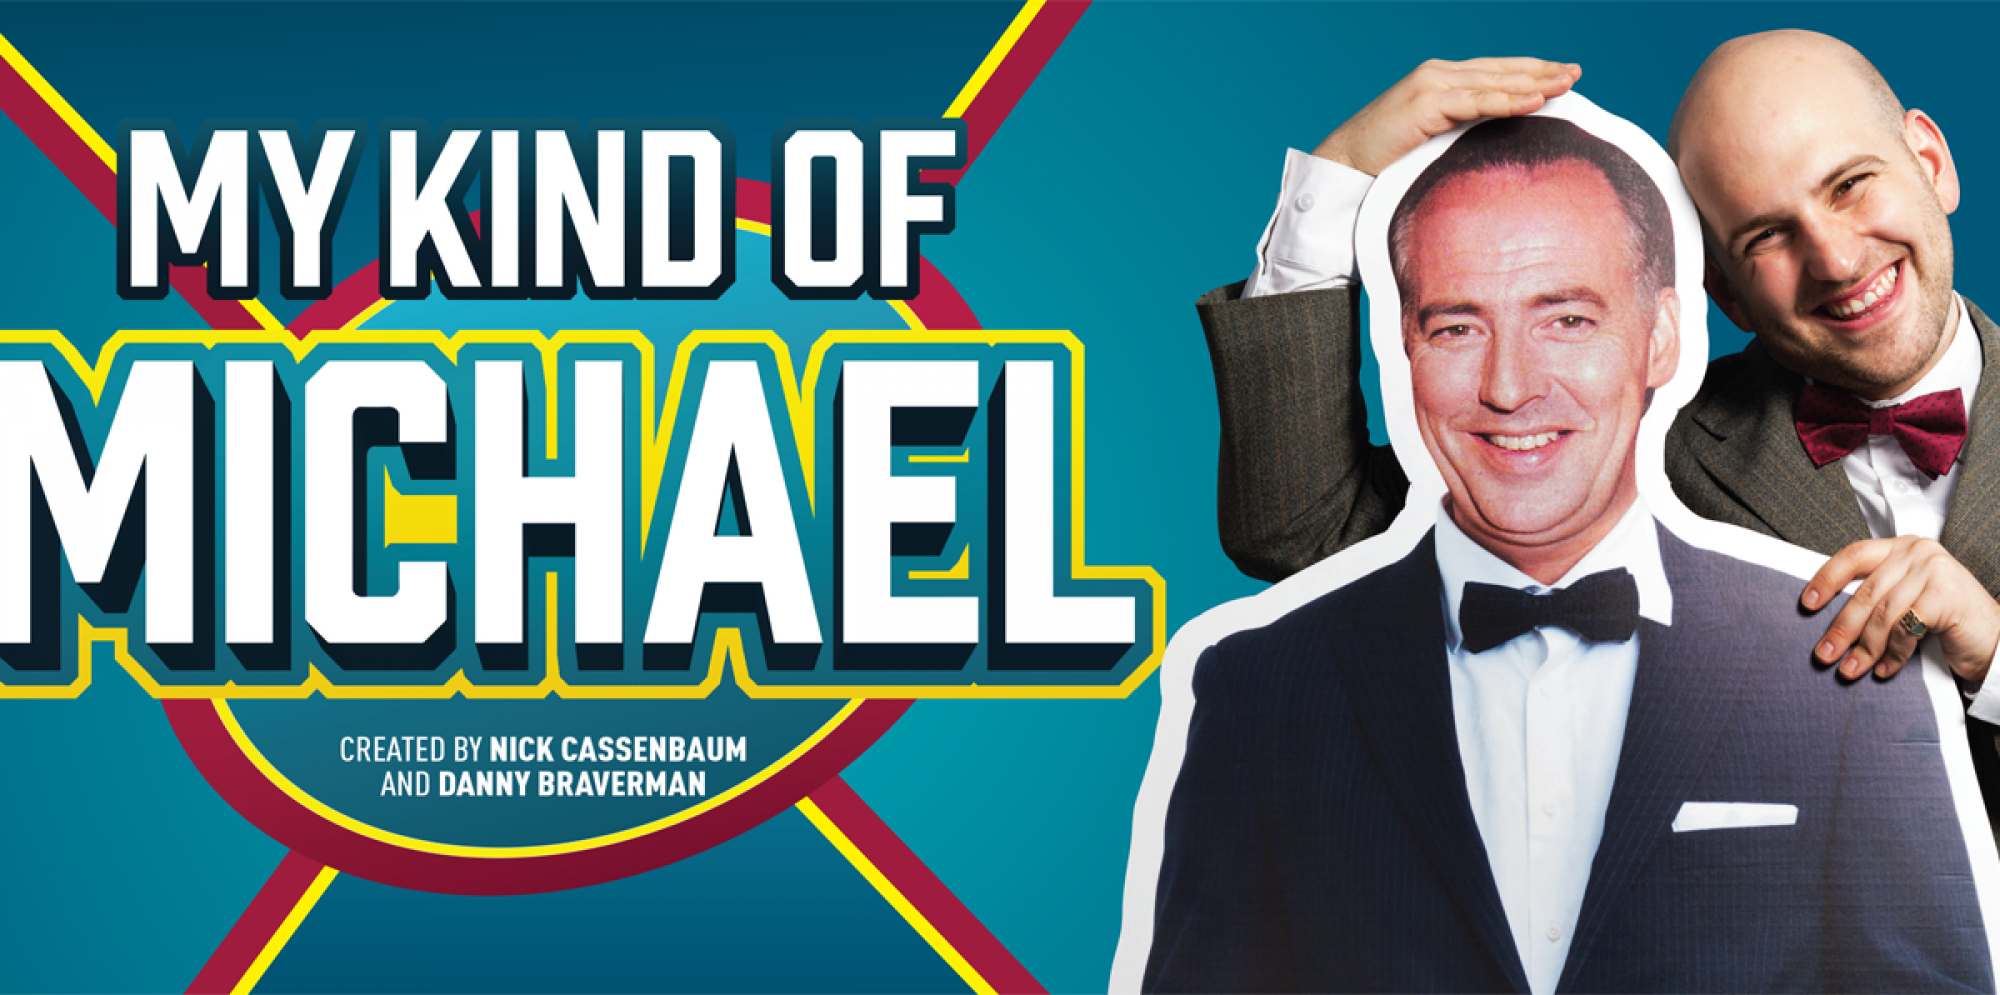 My Kind of Michael: Nick Cassenbaum, bald and in a suit, hugs a cardboard cut-out of Michael Barrymore. Big white letters spell My Kind of Michael